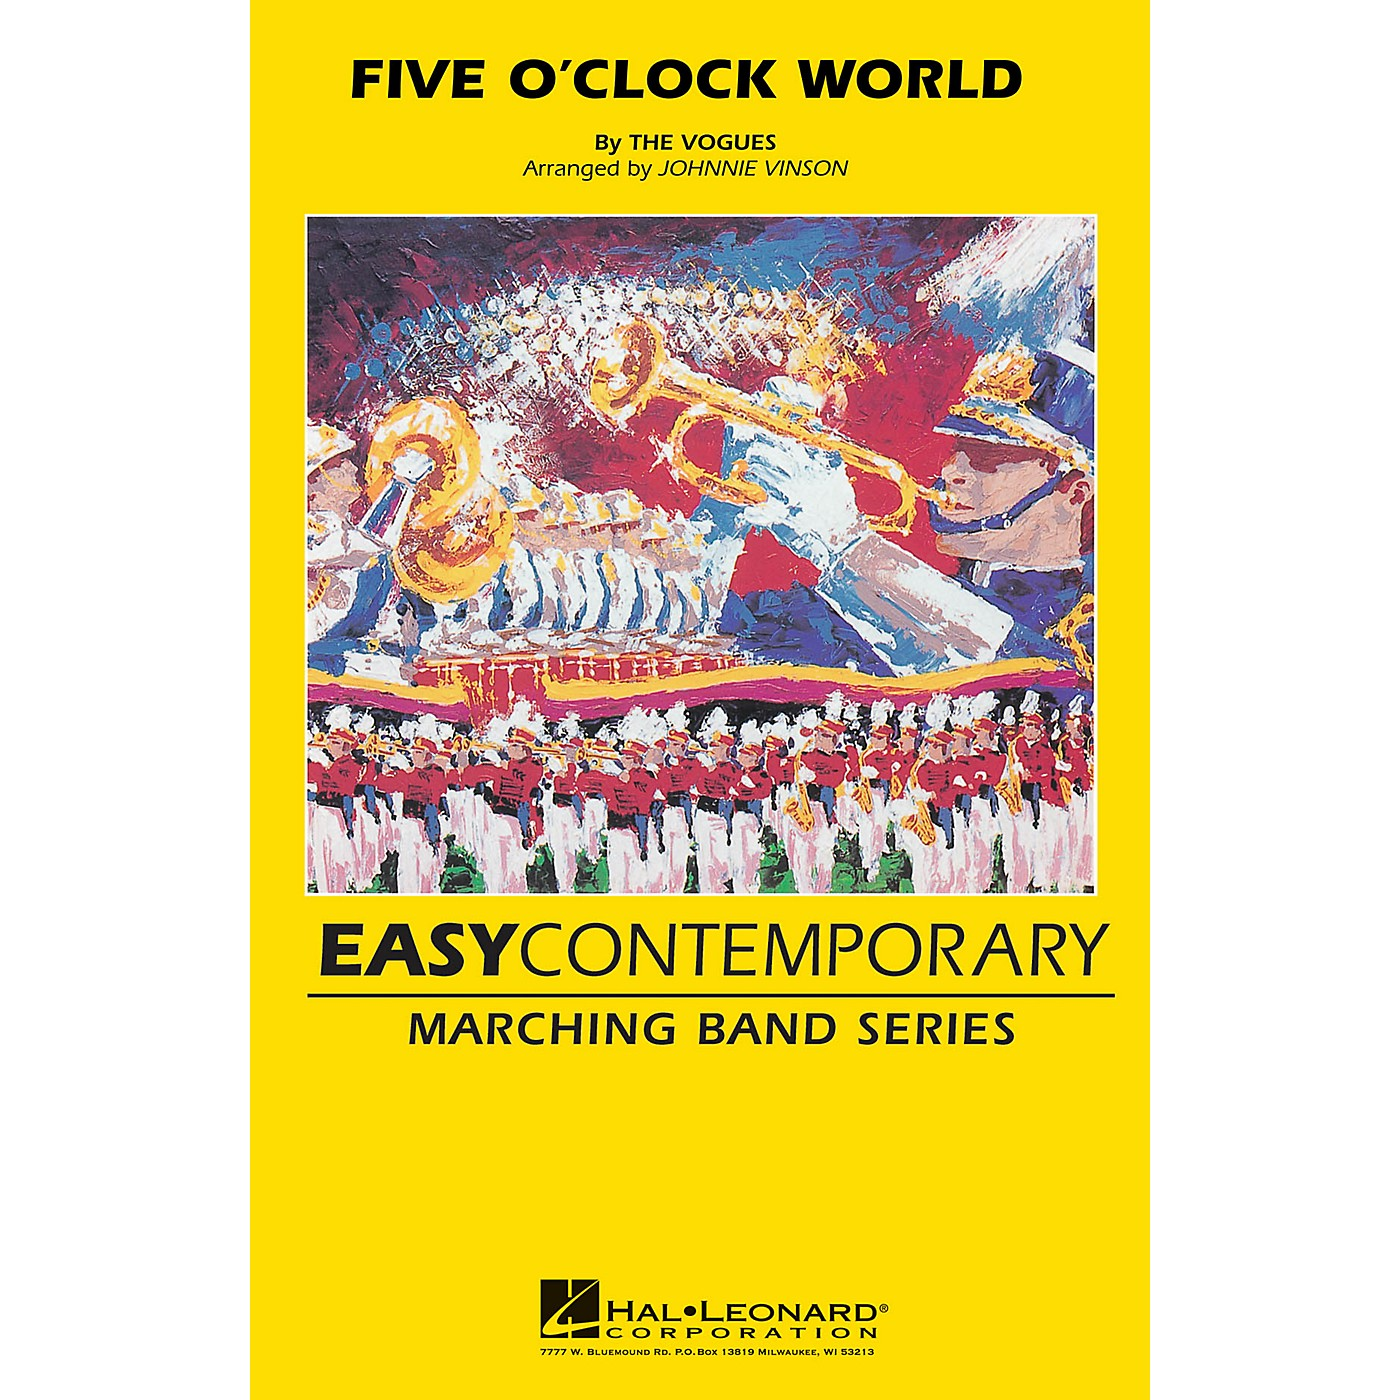 Hal Leonard Five O'clock World Marching Band Level 2-3 by The Vogues Arranged by Johnnie Vinson thumbnail